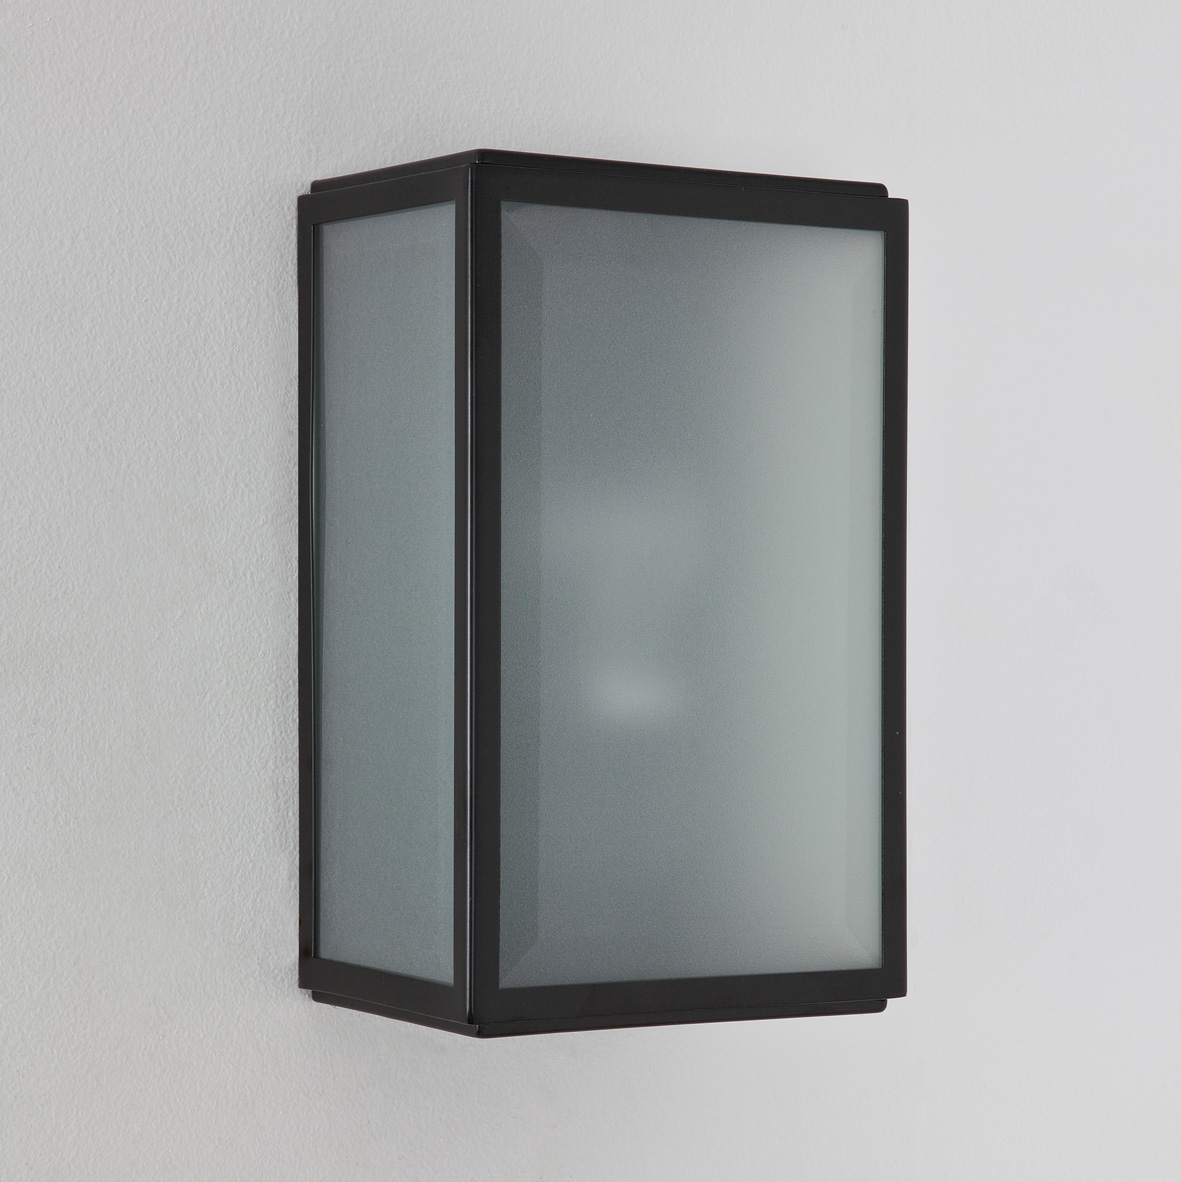 Osram External Wall Lights : Astro Homefield external frosted outdoor sensor wall light 60W E27 black nickel